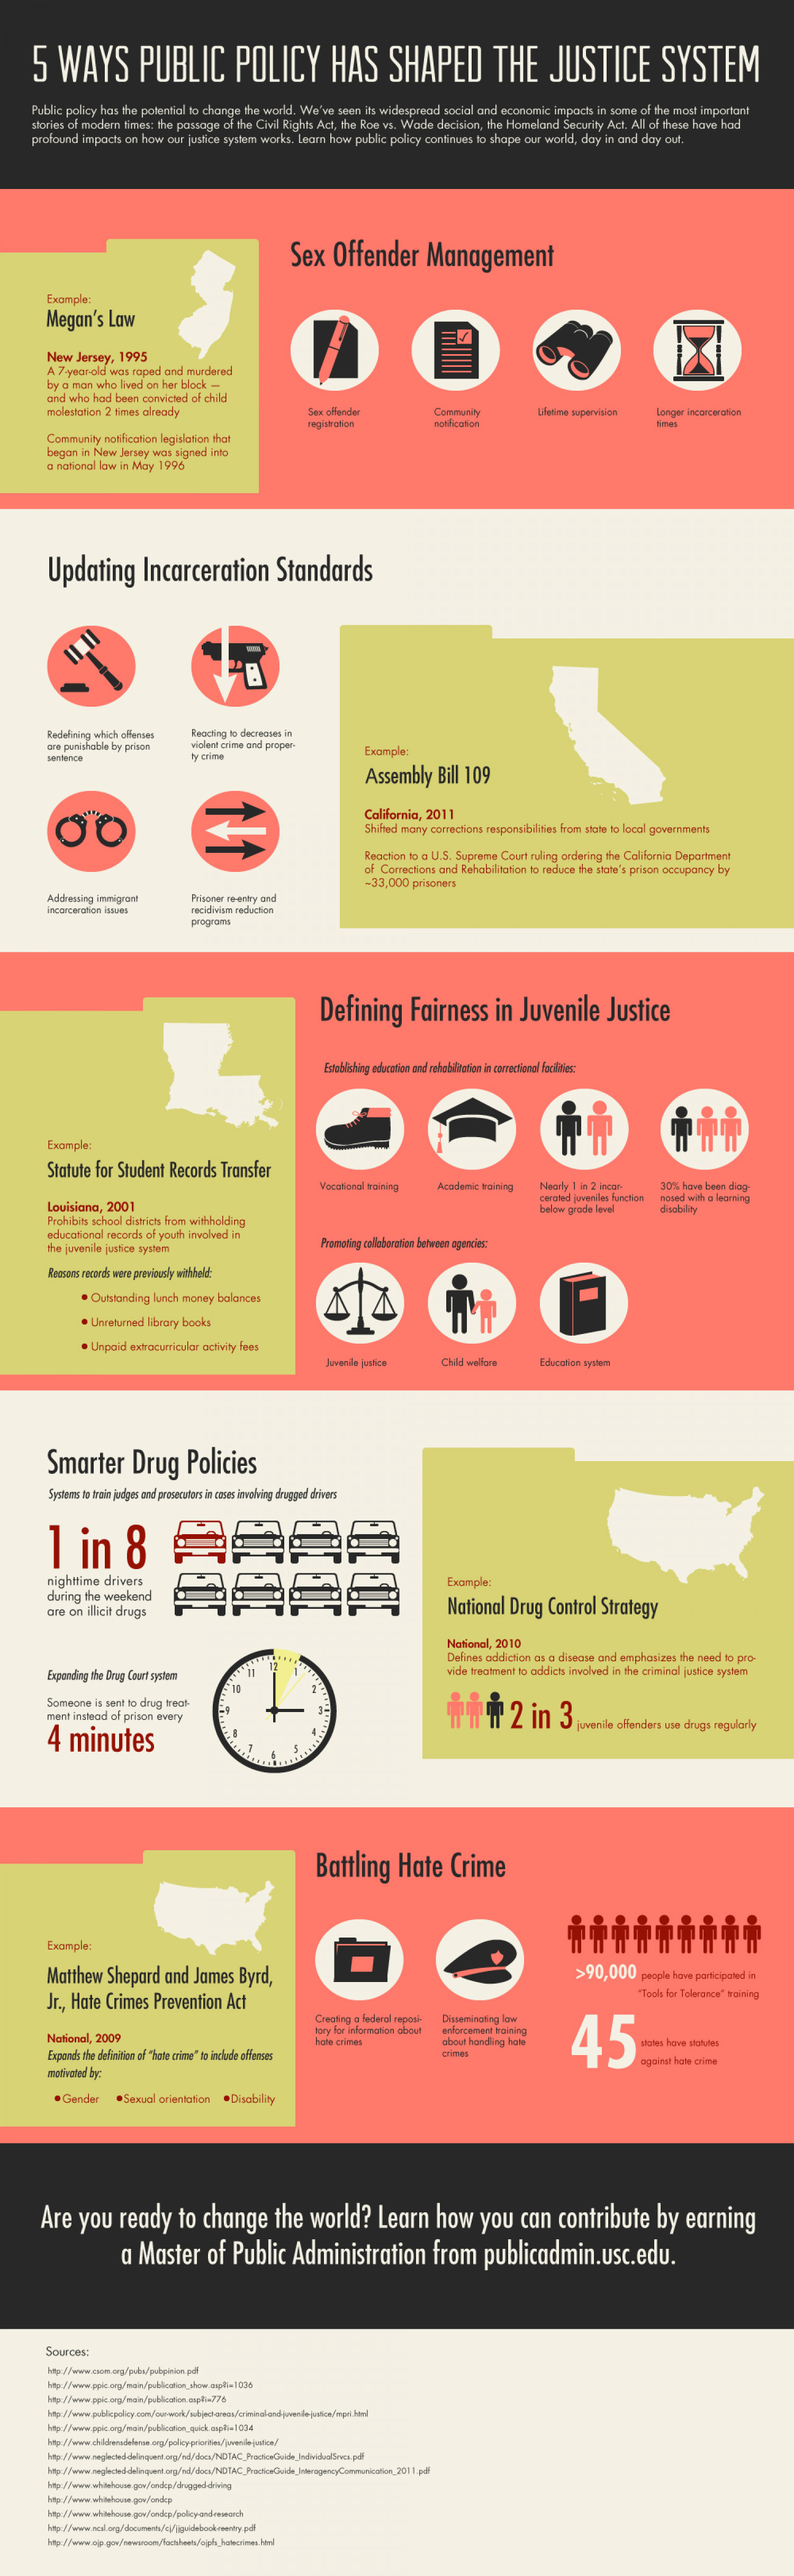 5 Ways Public Policy Has Shaped the Justice System Infographic